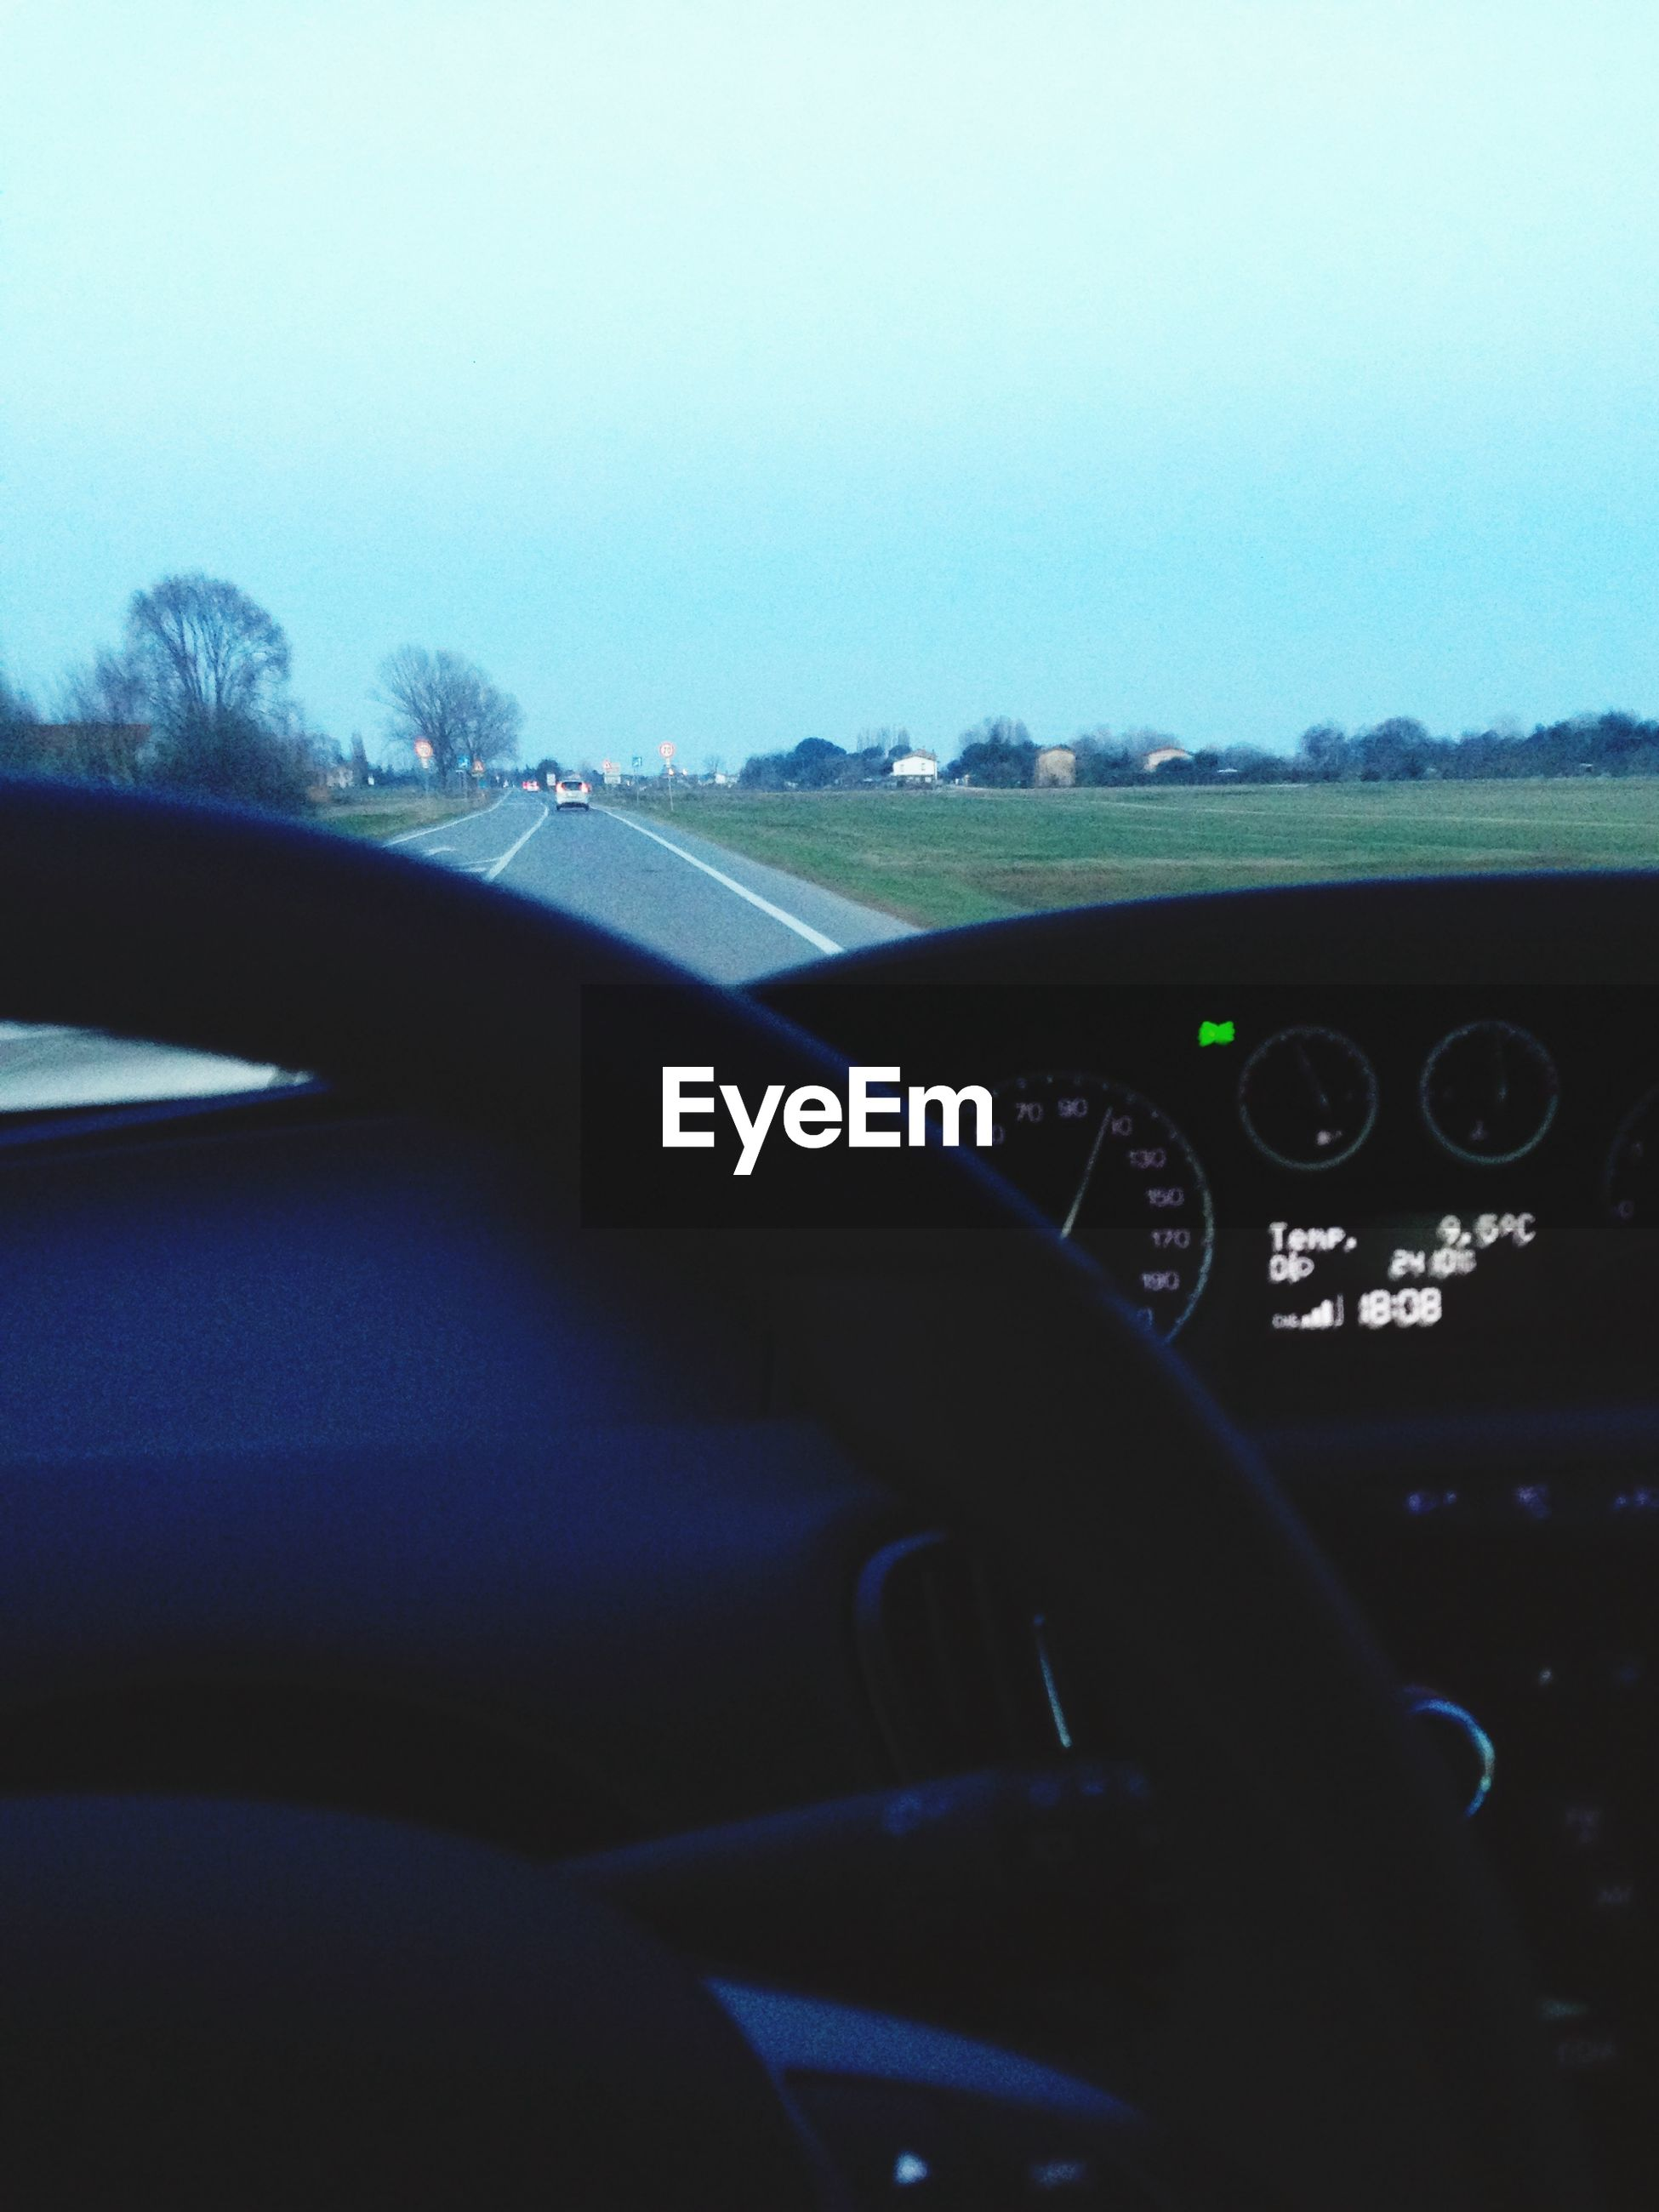 transportation, mode of transport, land vehicle, car, car interior, vehicle interior, part of, windshield, cropped, travel, road, dashboard, journey, driving, steering wheel, side-view mirror, on the move, close-up, clear sky, road trip